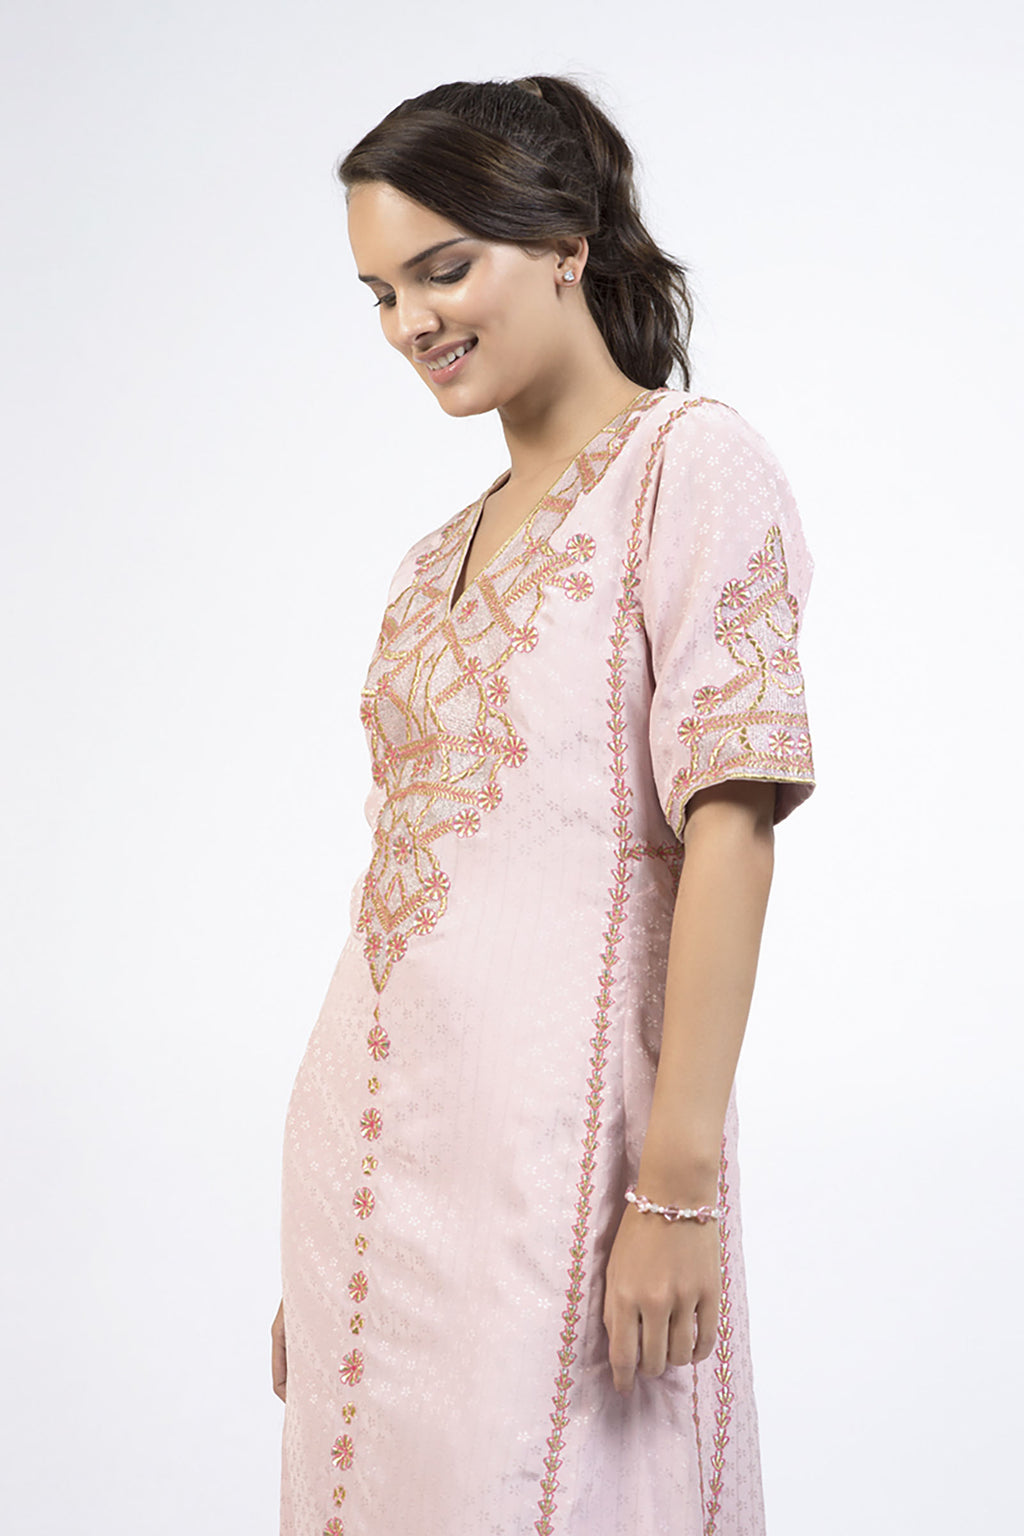 Pink Loose Fitting Vintage Maxi Dress